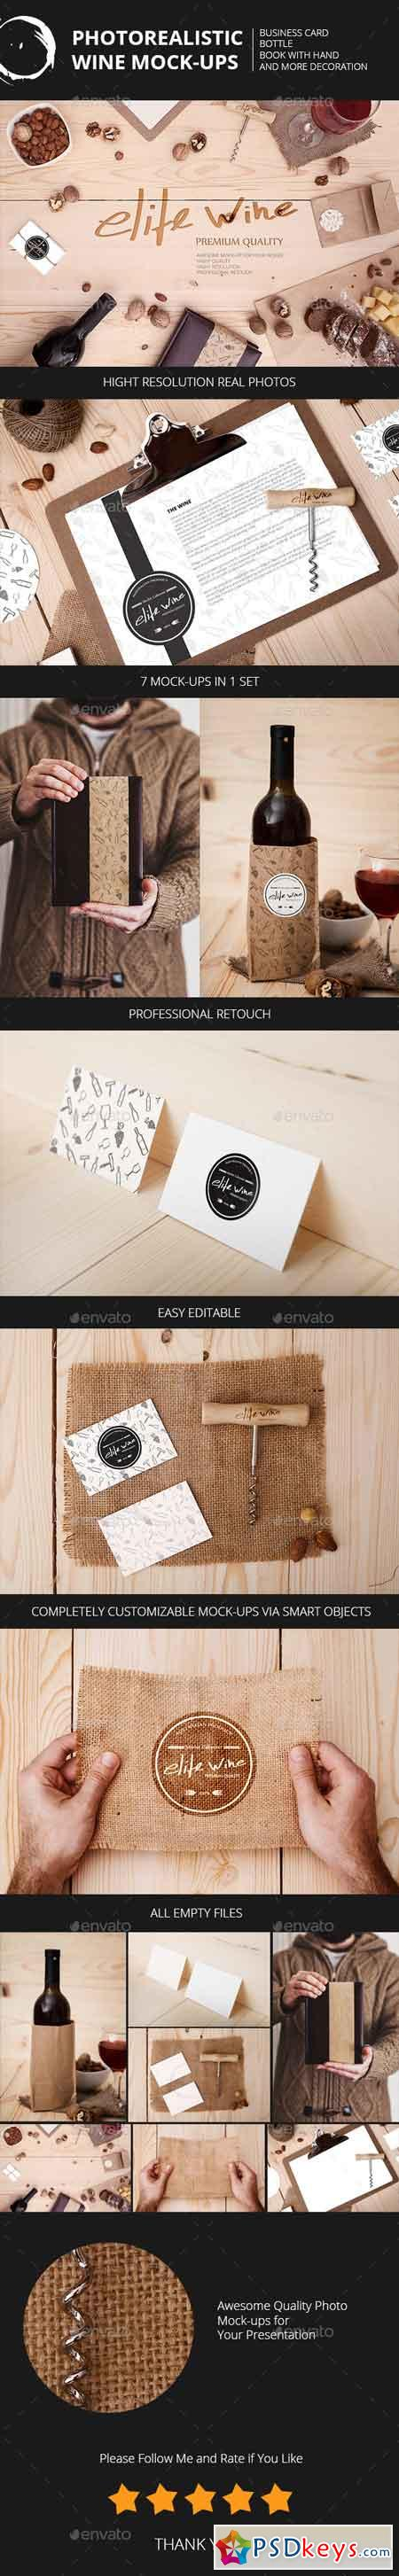 Wine Themes Mock-Ups 10467459